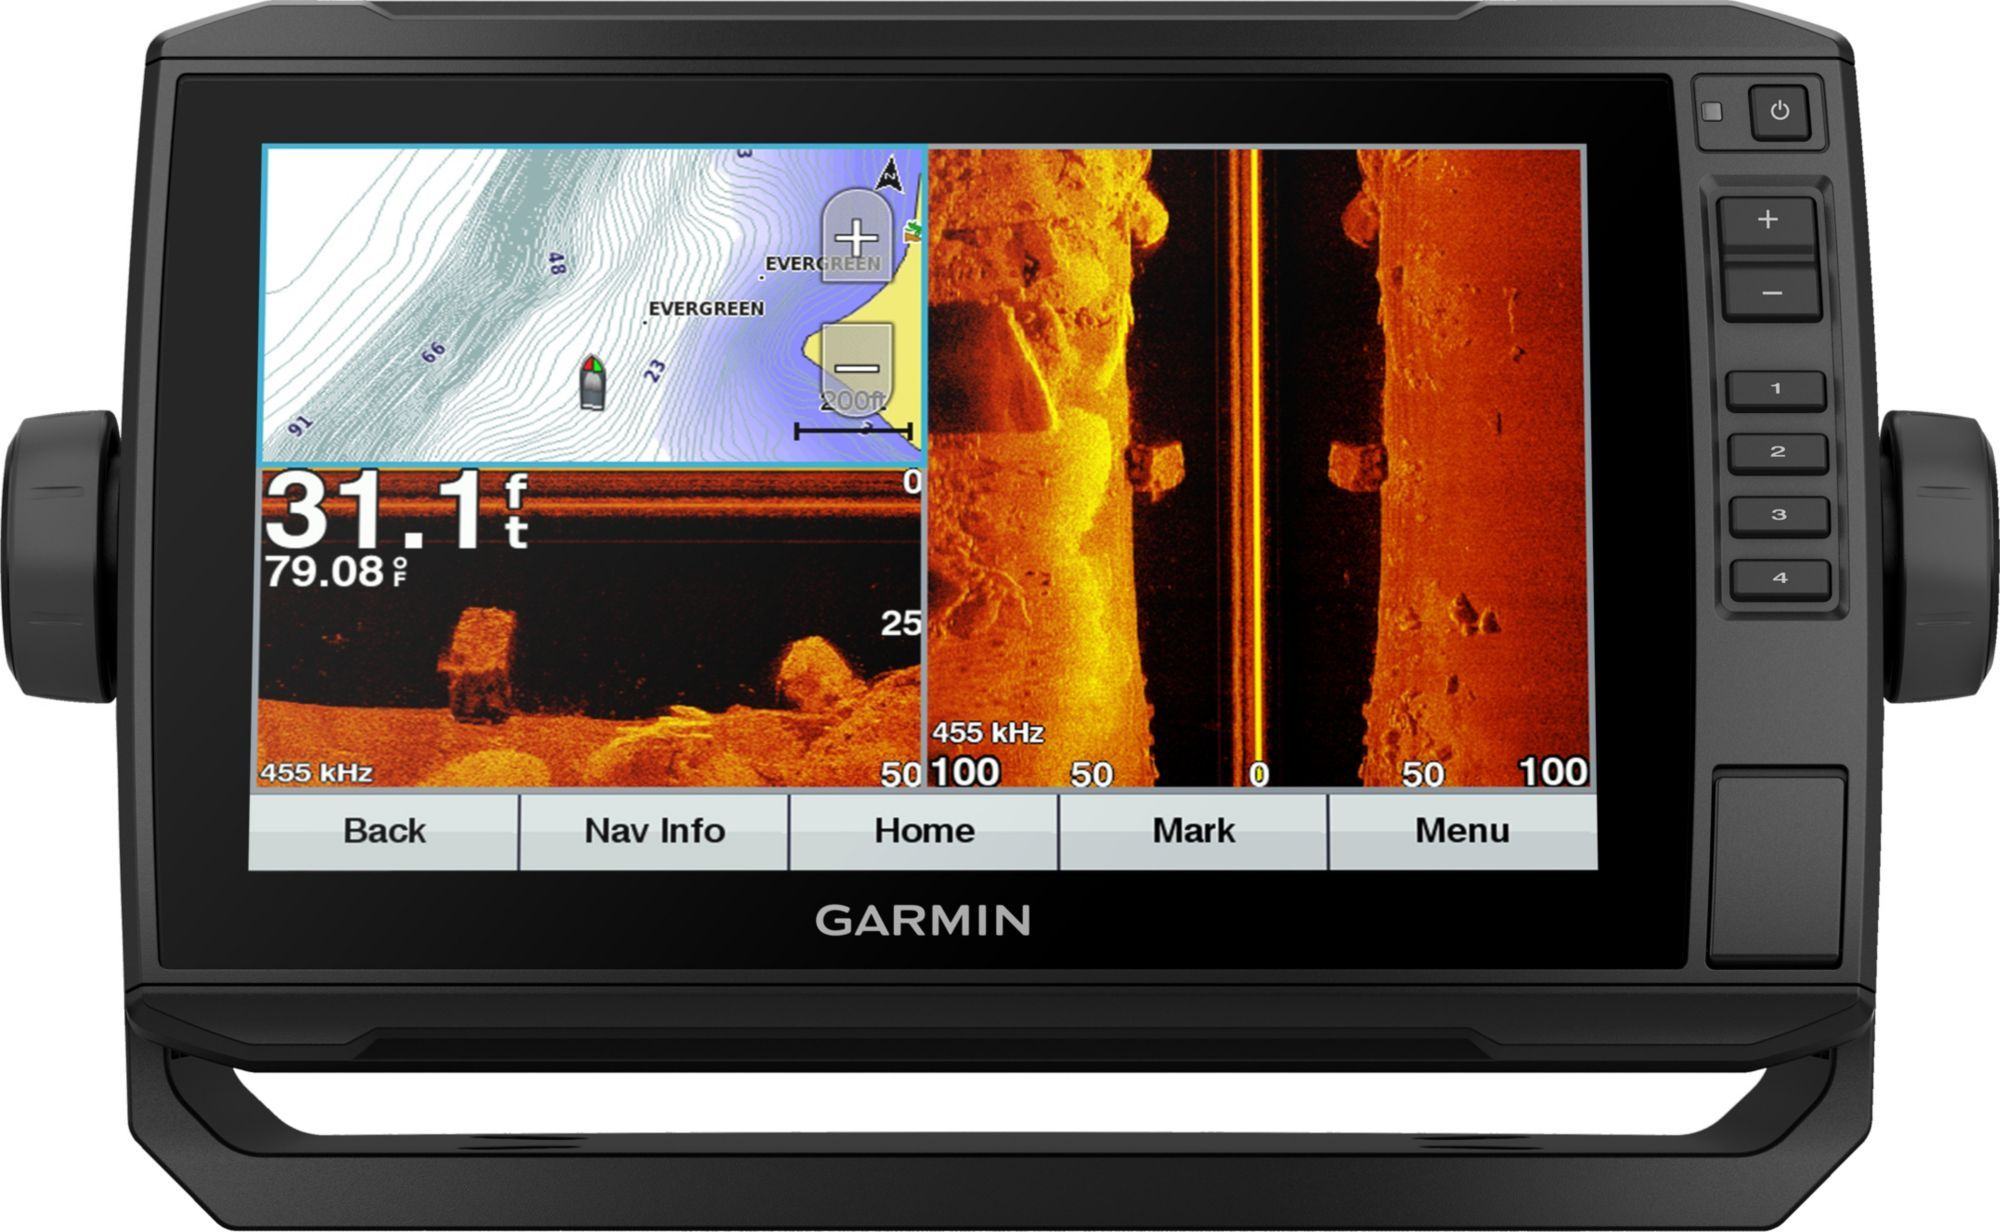 Garmin echoMAP Plus 93sv Lakevü G3 GPS Fish Finder (010